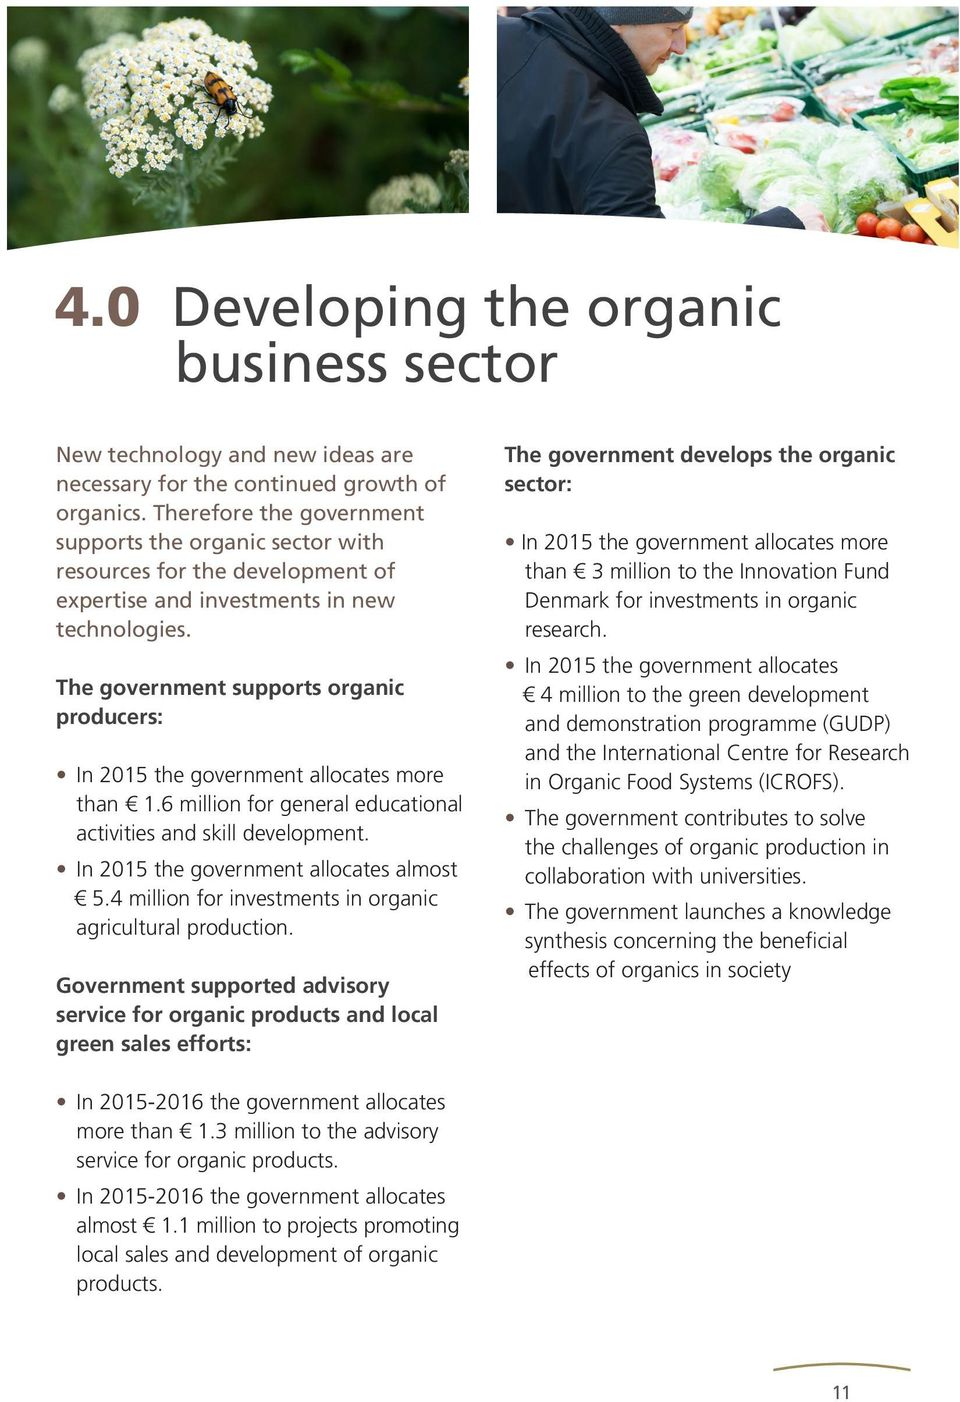 The government supports organic producers: In 2015 the government allocates more than 1.6 million for general educational activities and skill development. In 2015 the government allocates almost 5.